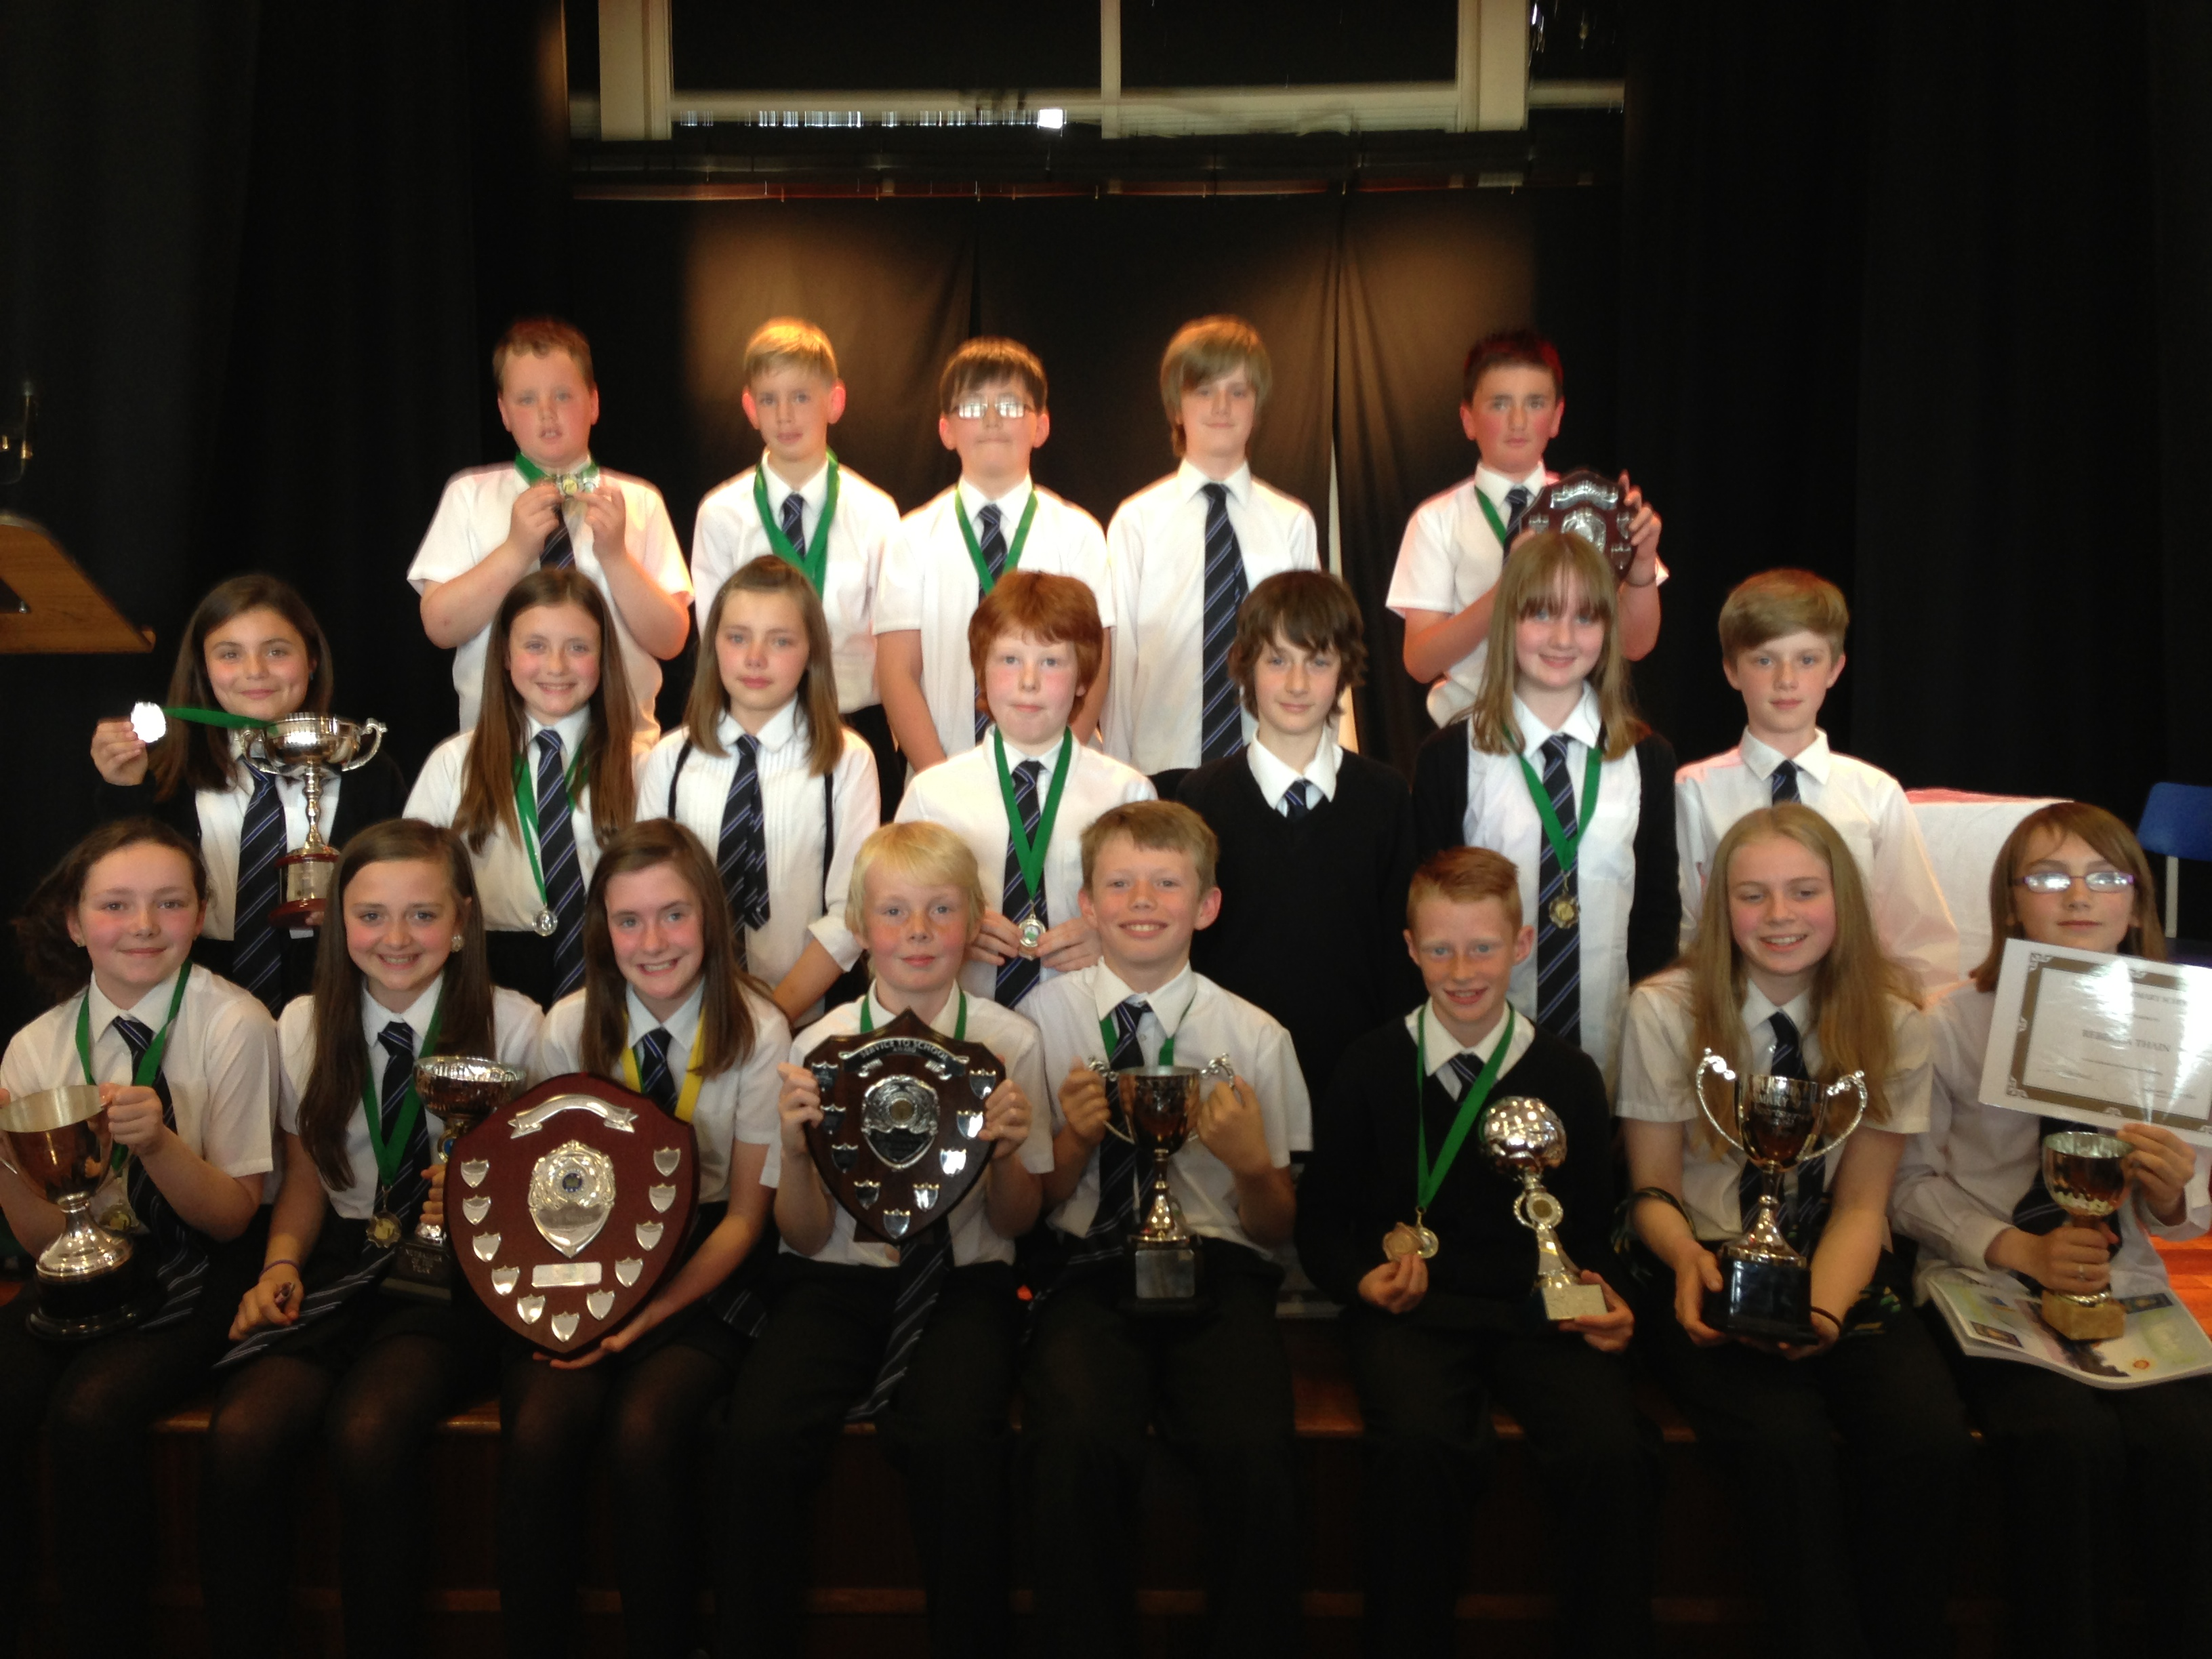 P7s at Prize Giving